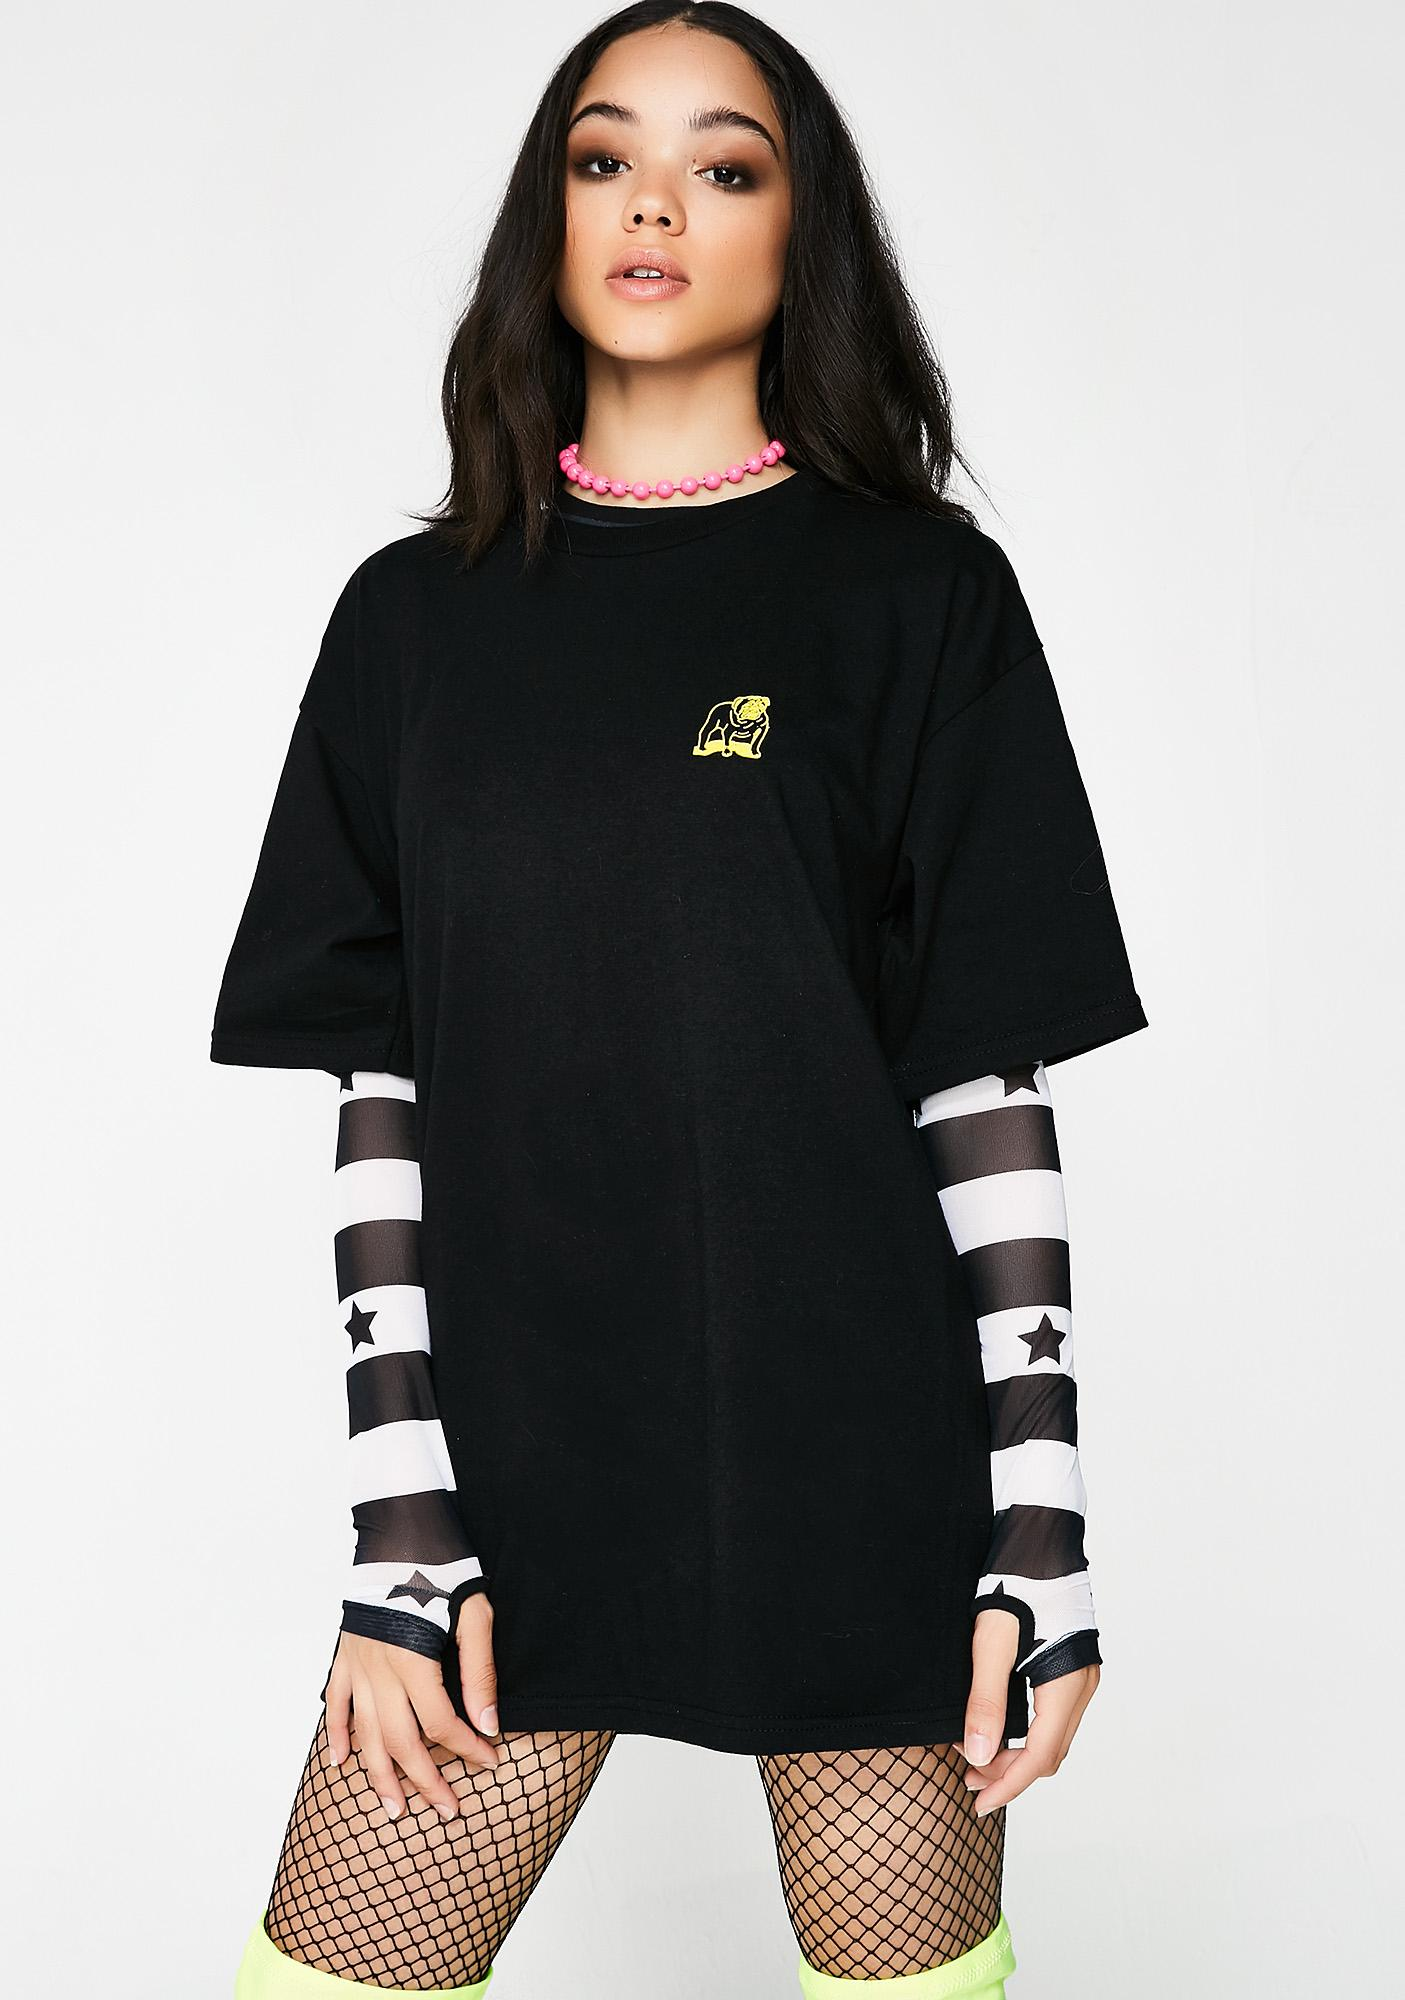 Obey Special Reserve Tee